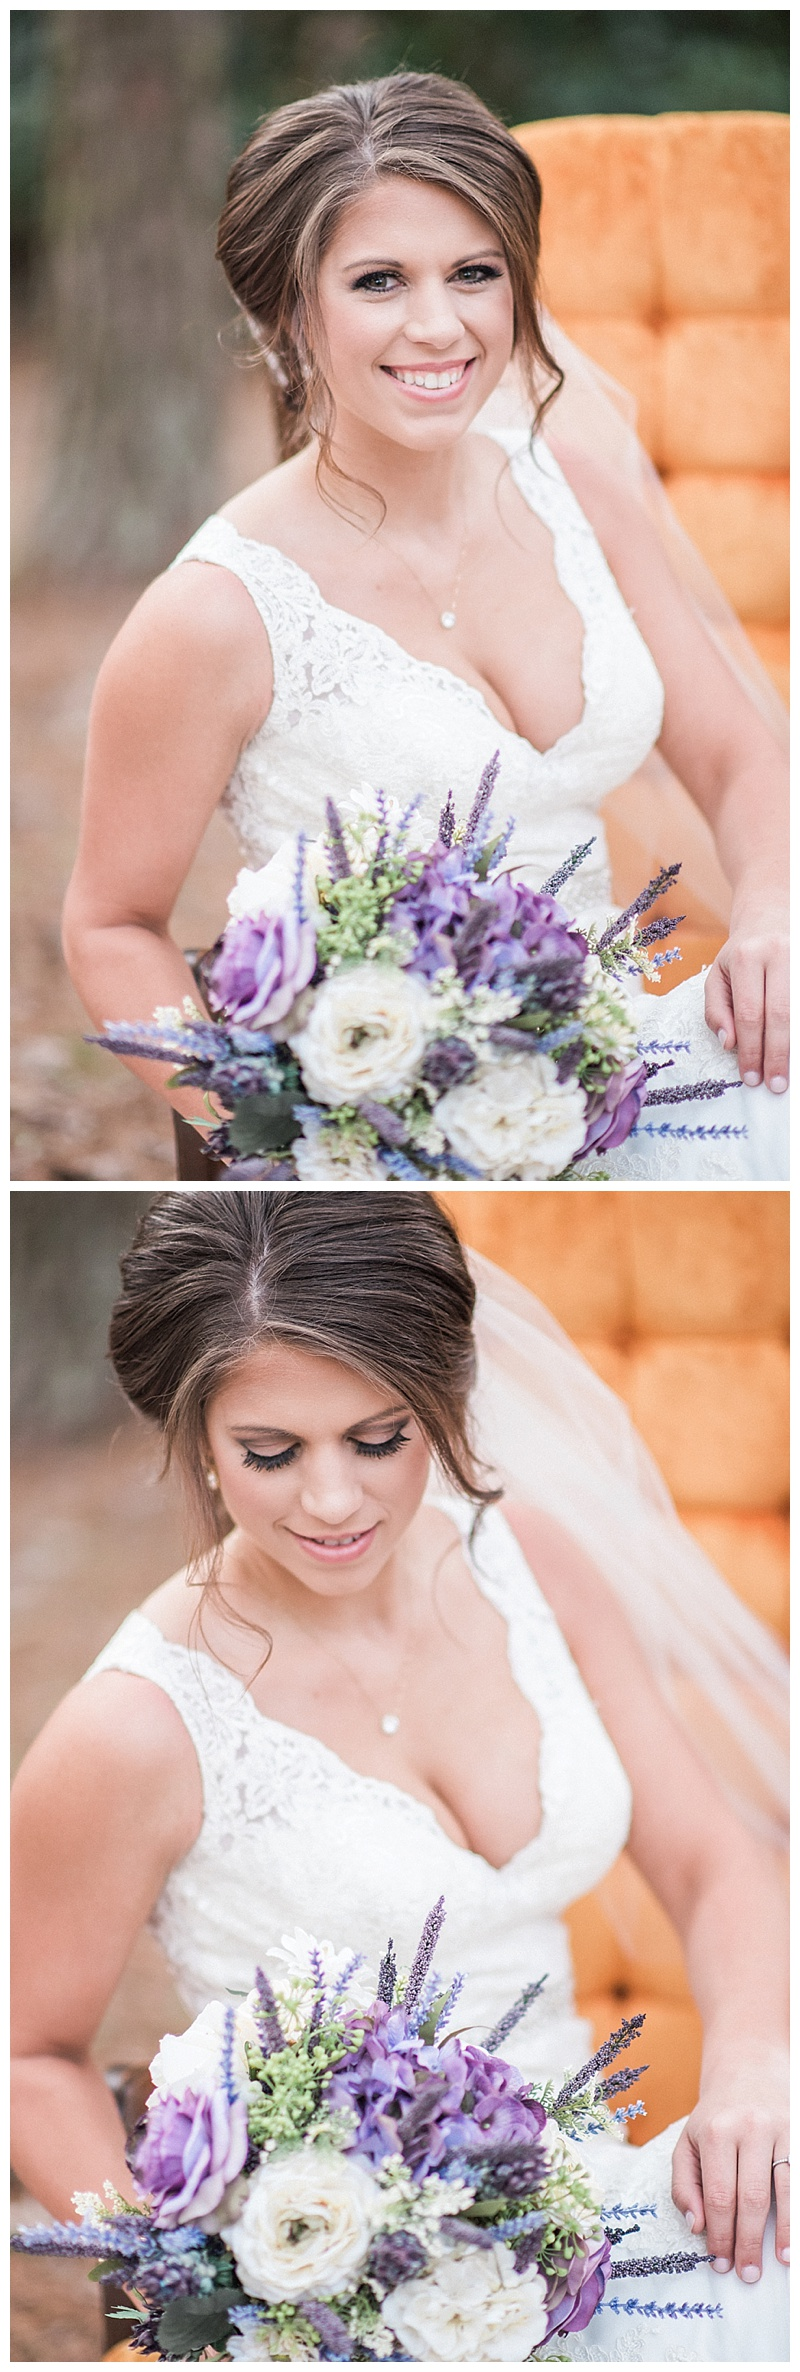 27Whitney Marie Photography. Shreveport Wedding Photographer. American rose center bridals.jpg